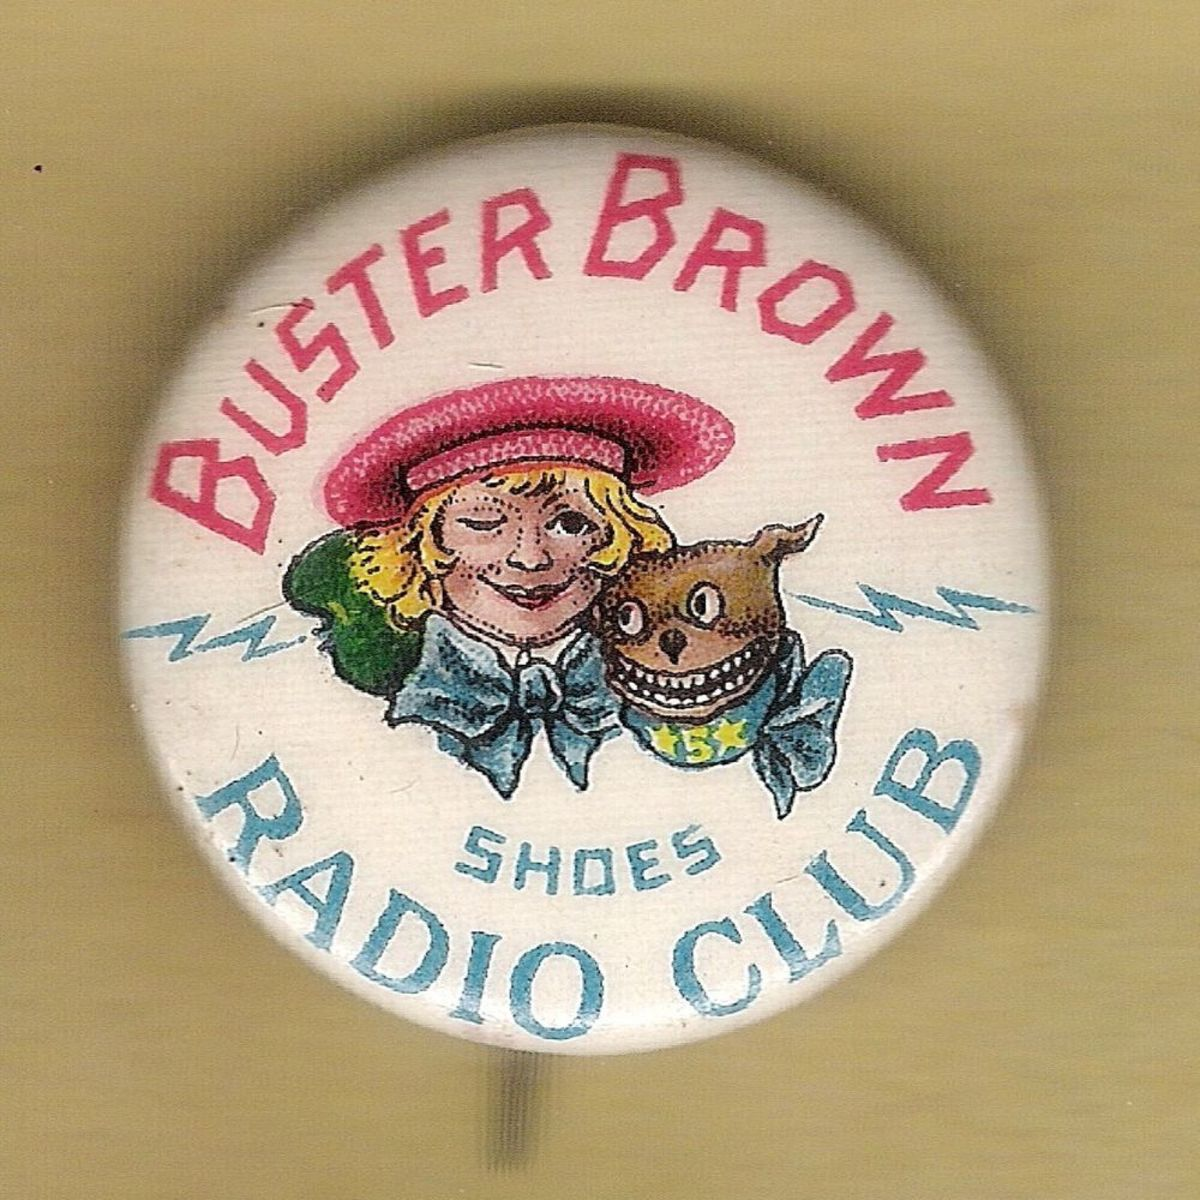 One of the iconic Buster Brown Shoes Radio Club pins.